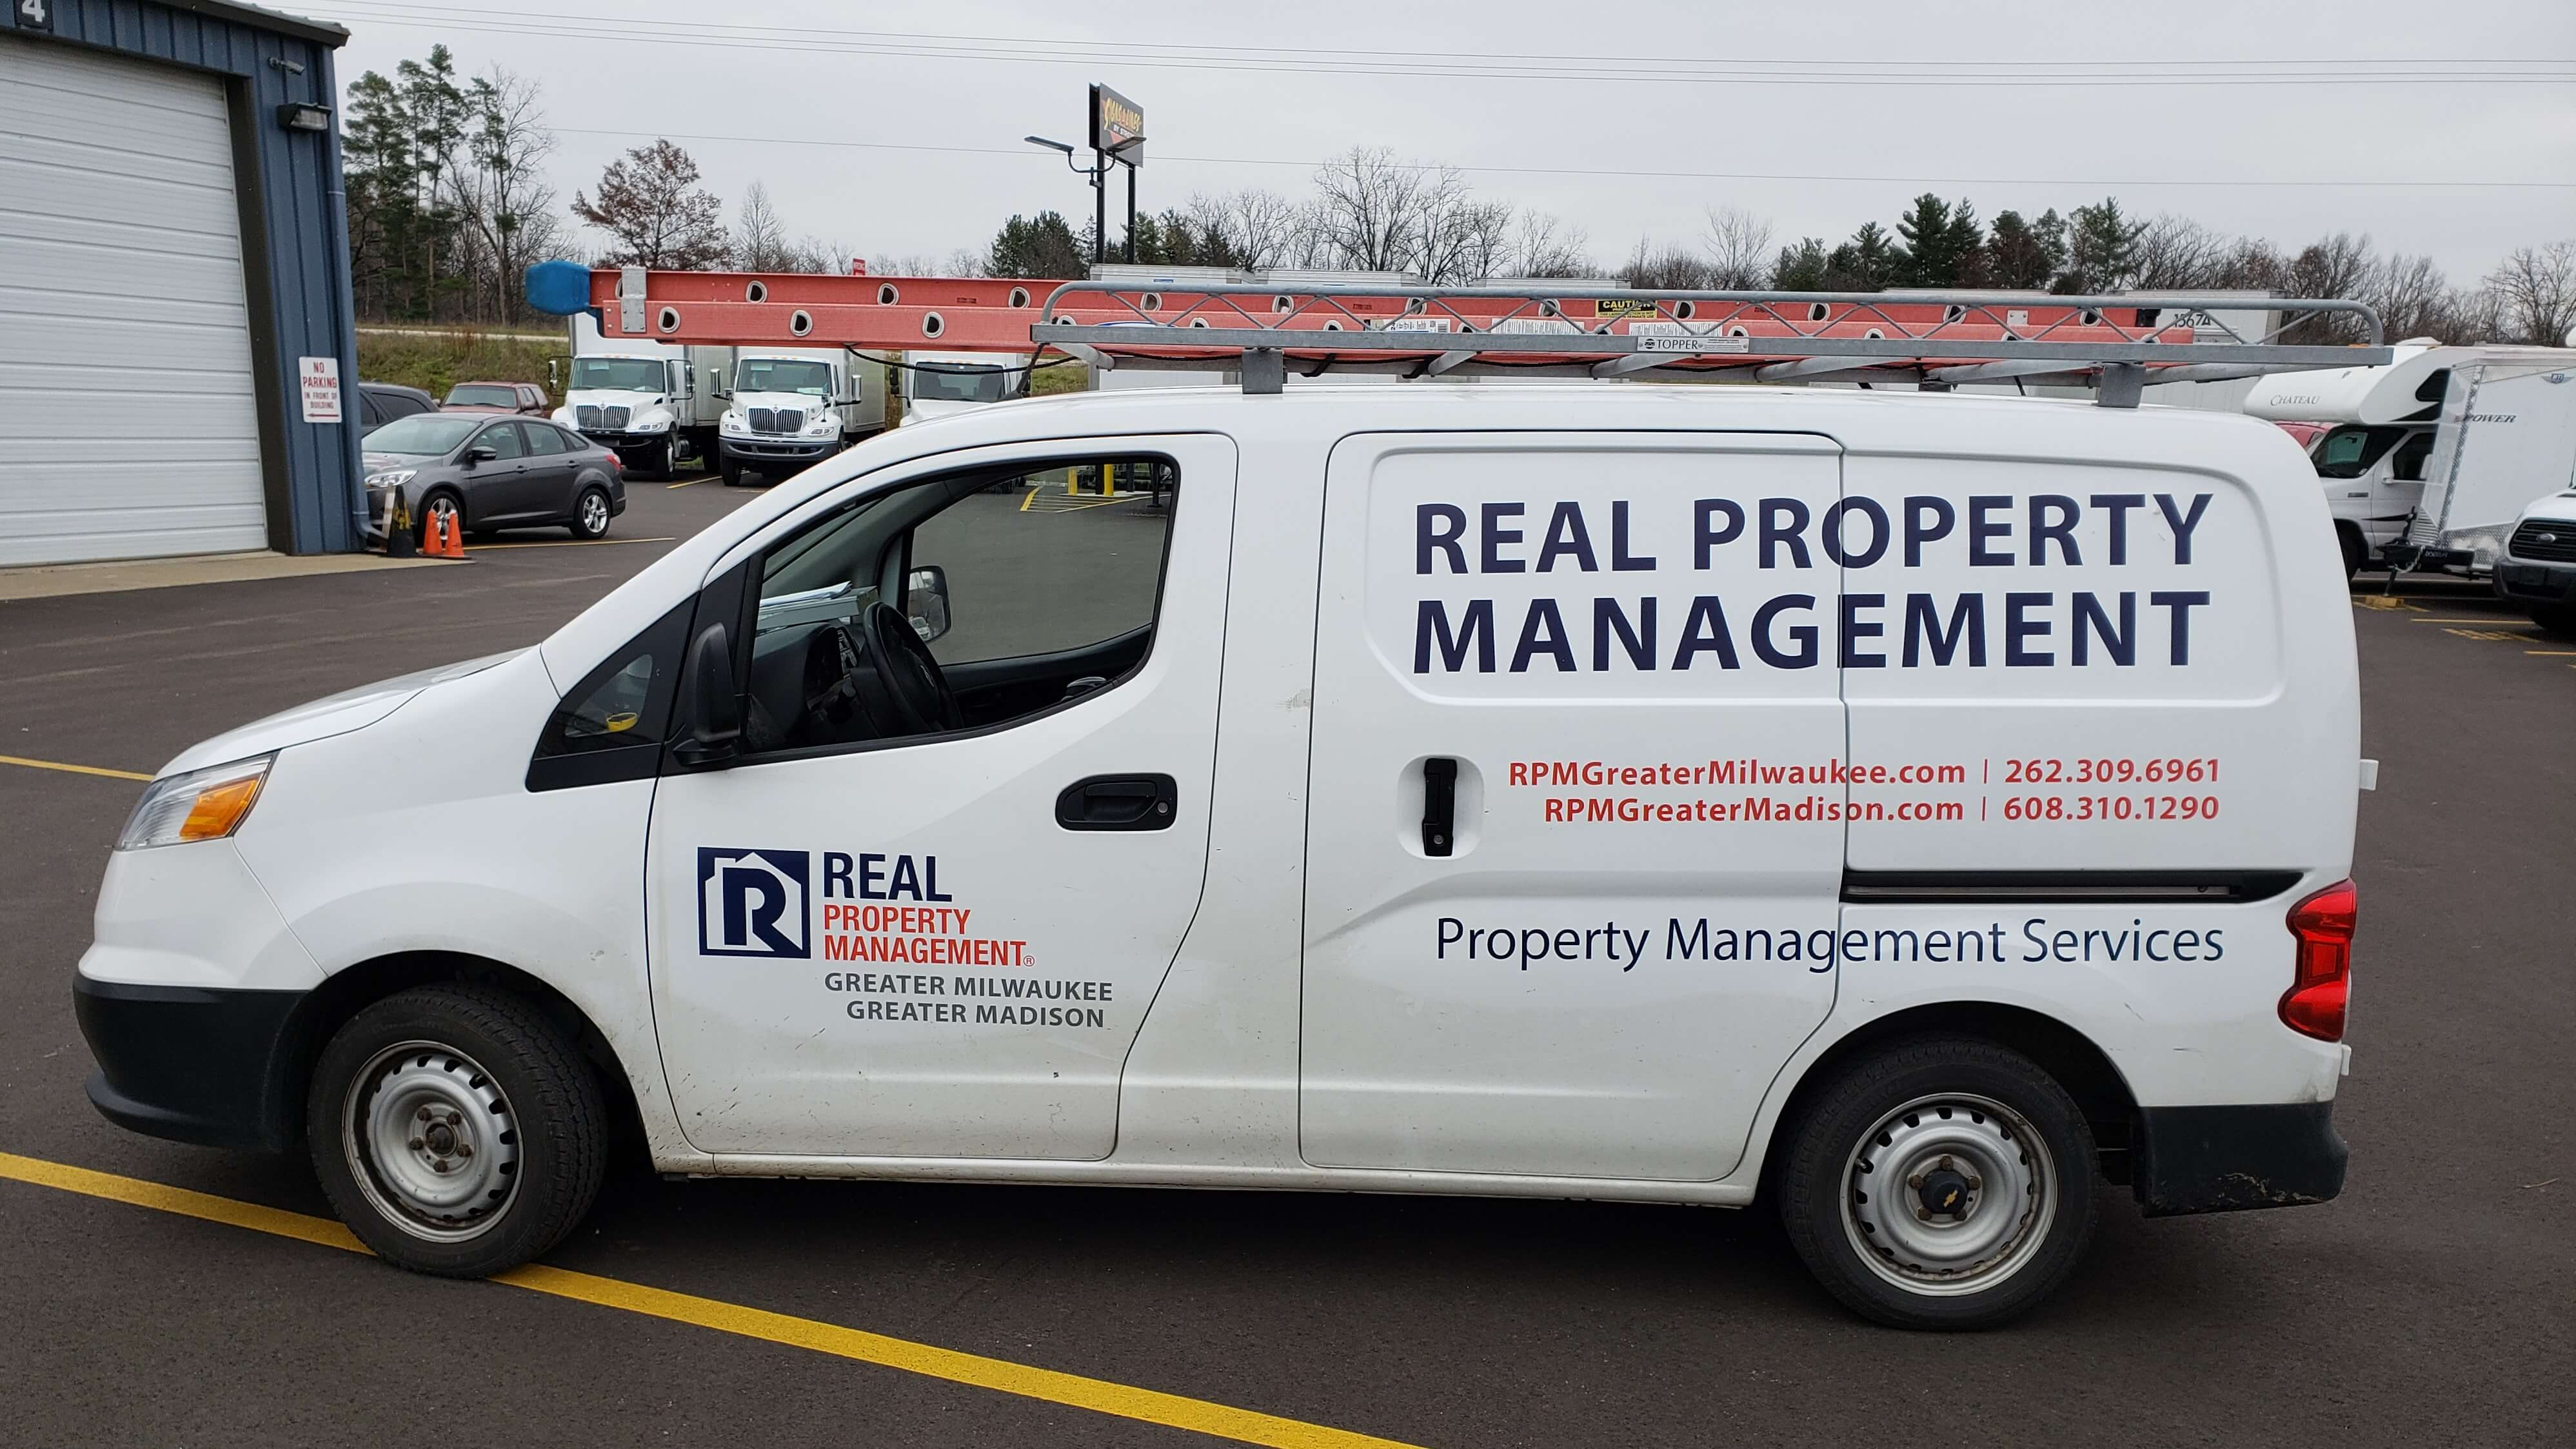 Spot graphics for real property